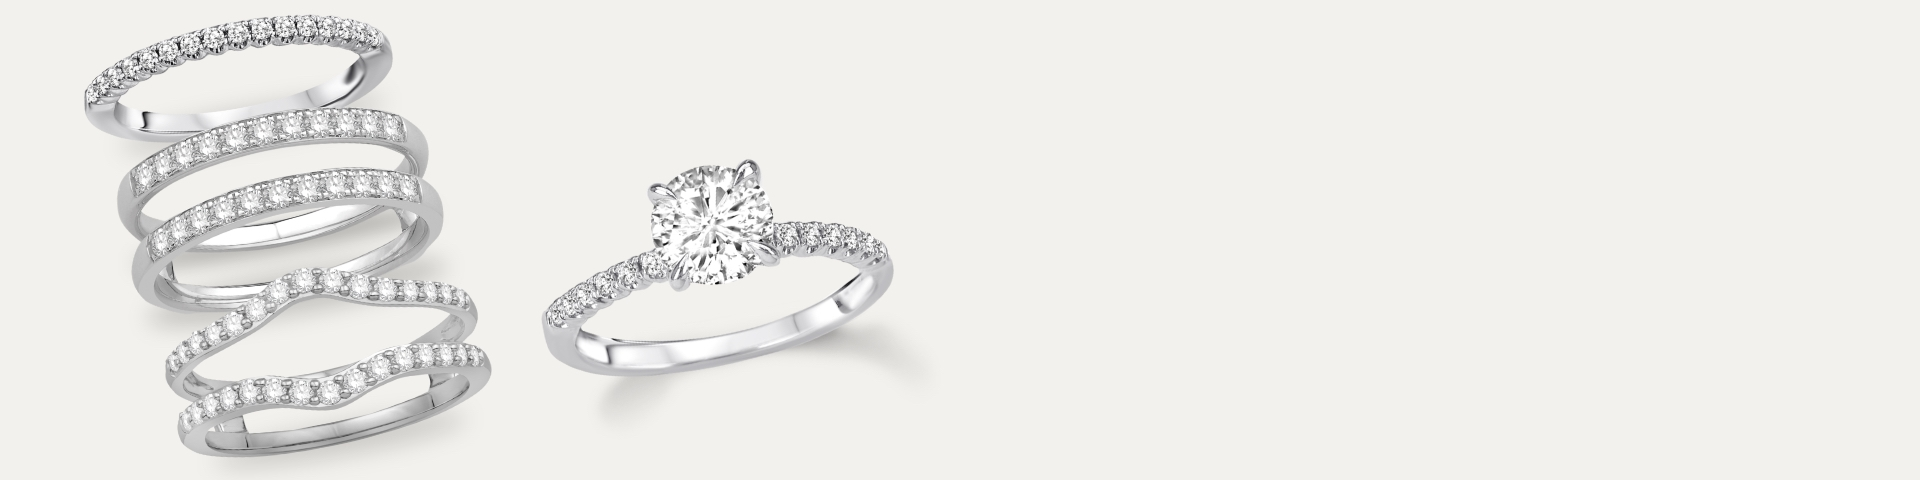 white gold diamond engagement ring and wedding bands against white background